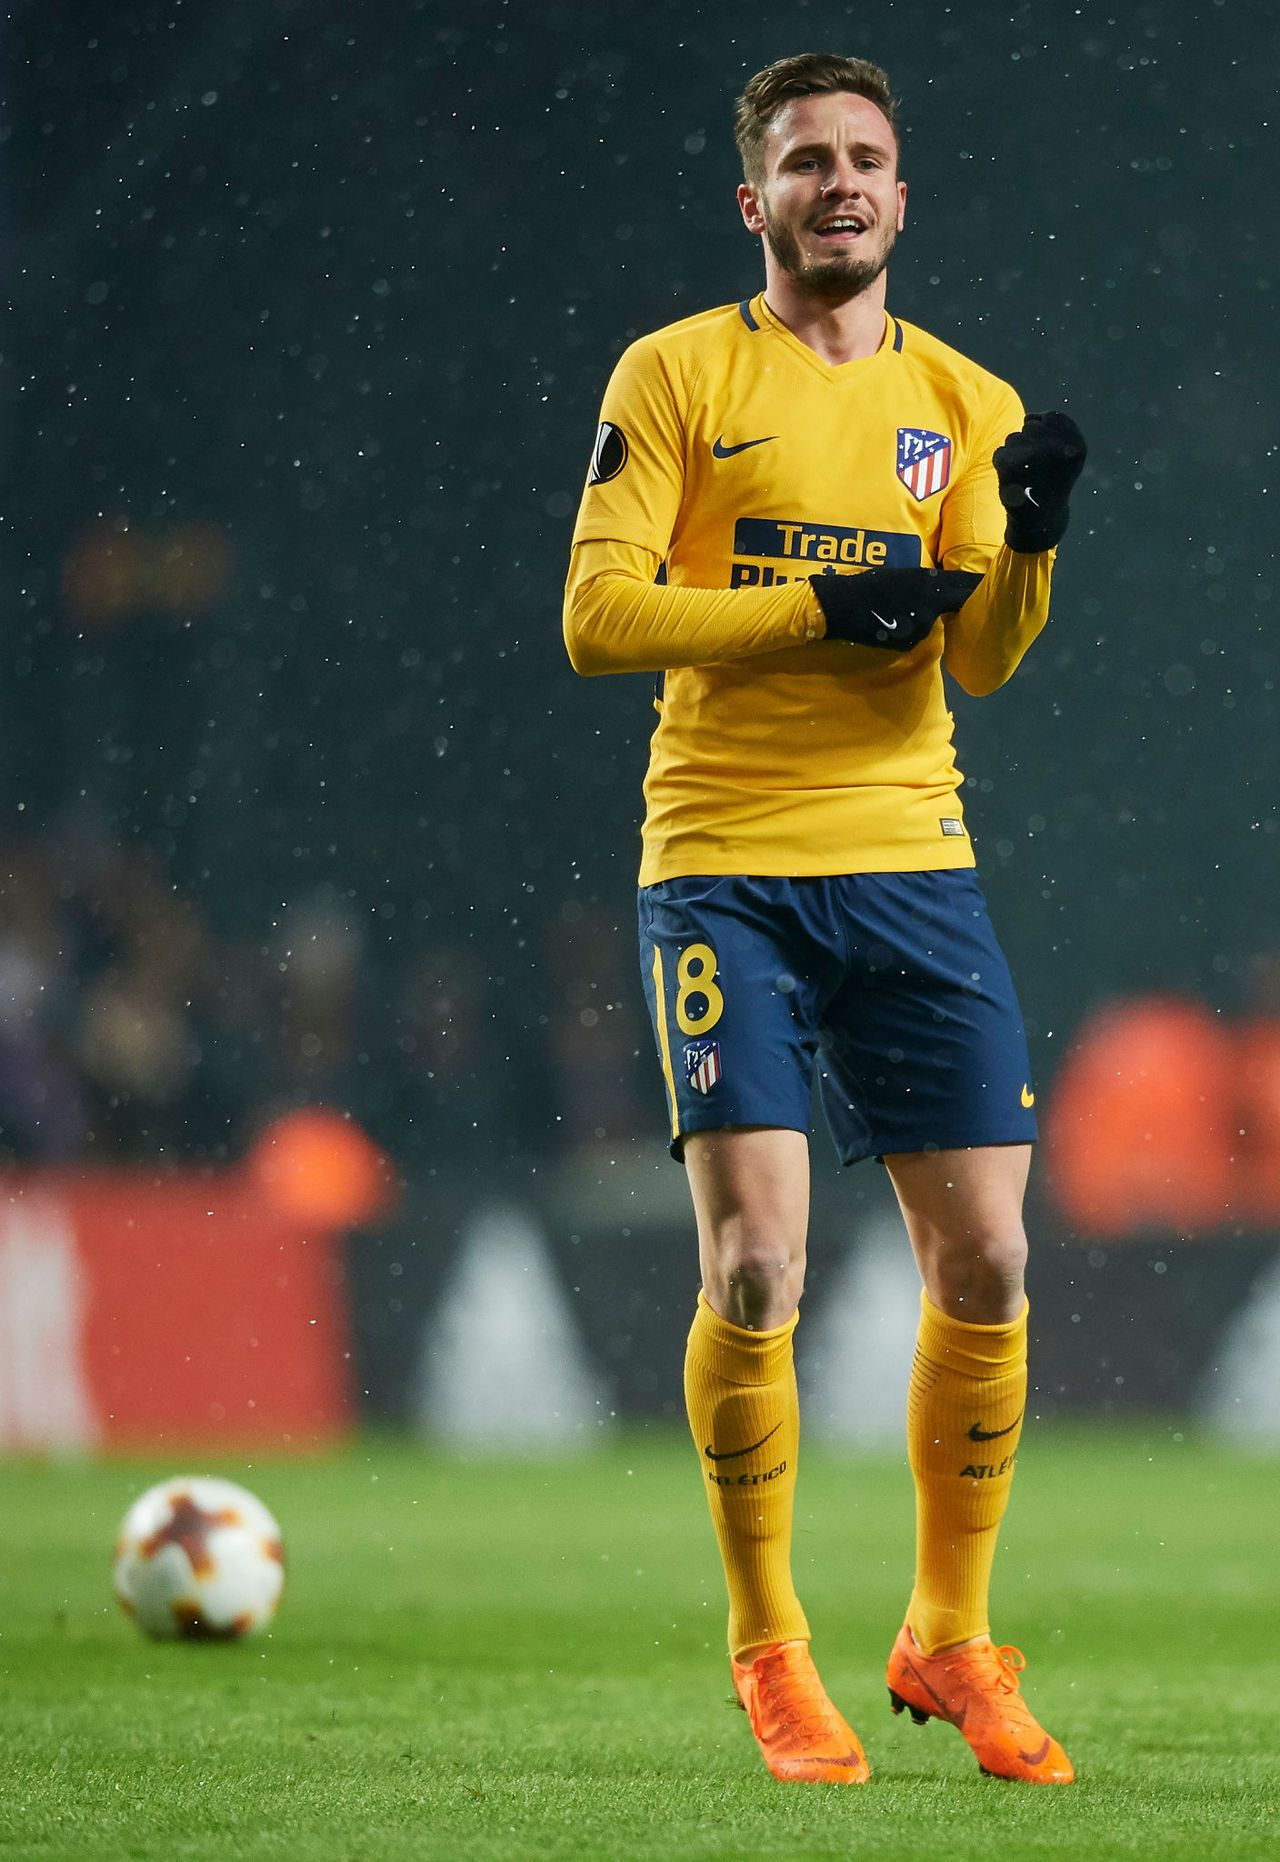 Saul Niguez Soccer Pictures Football Pictures Football